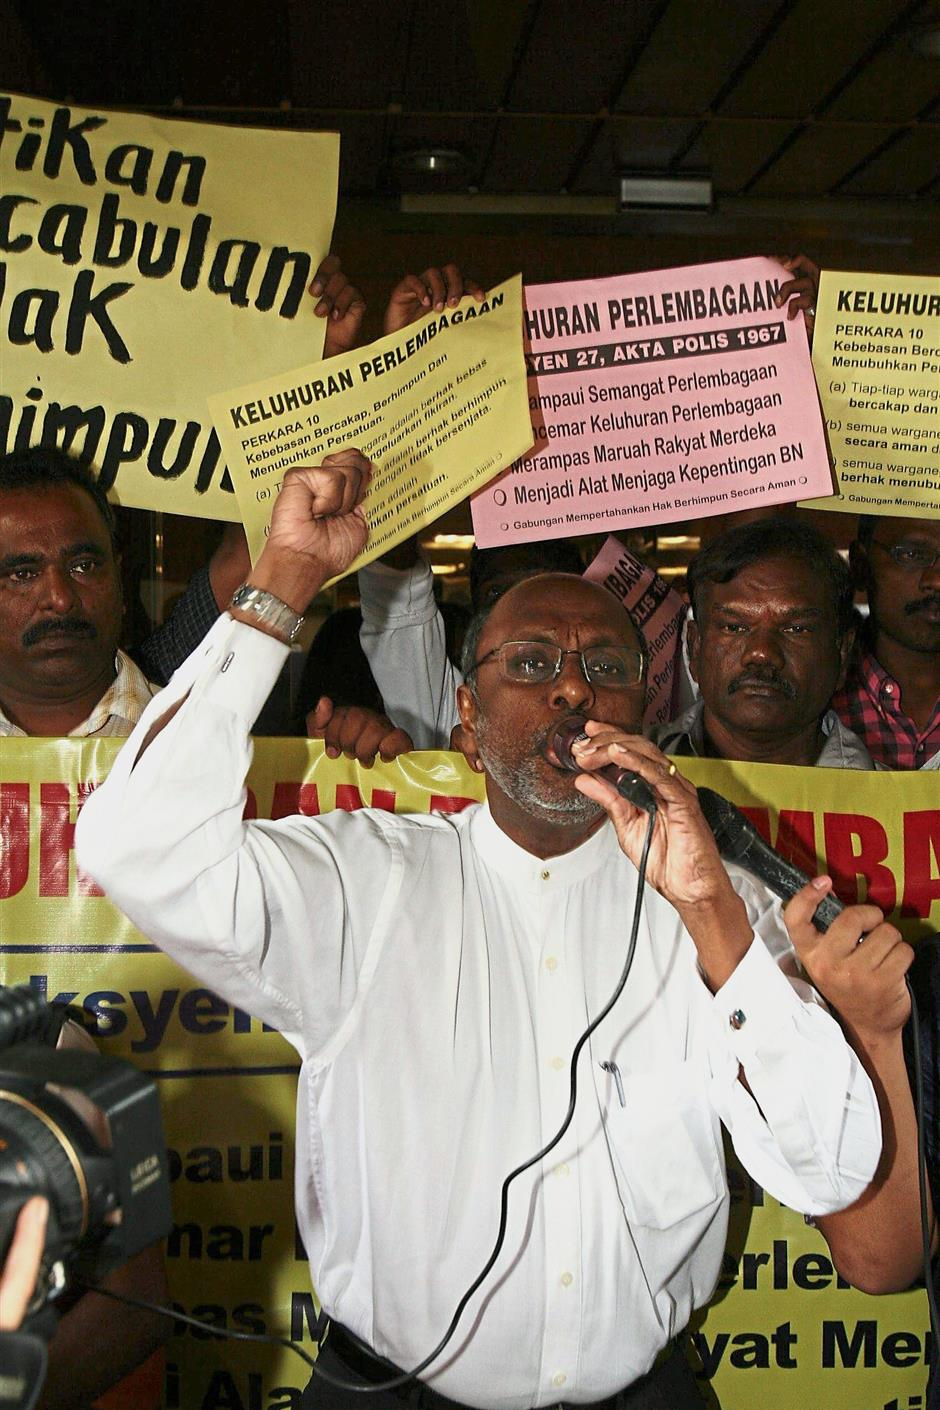 Activist: Fighting for the right to hold peaceful rallies in 2007.